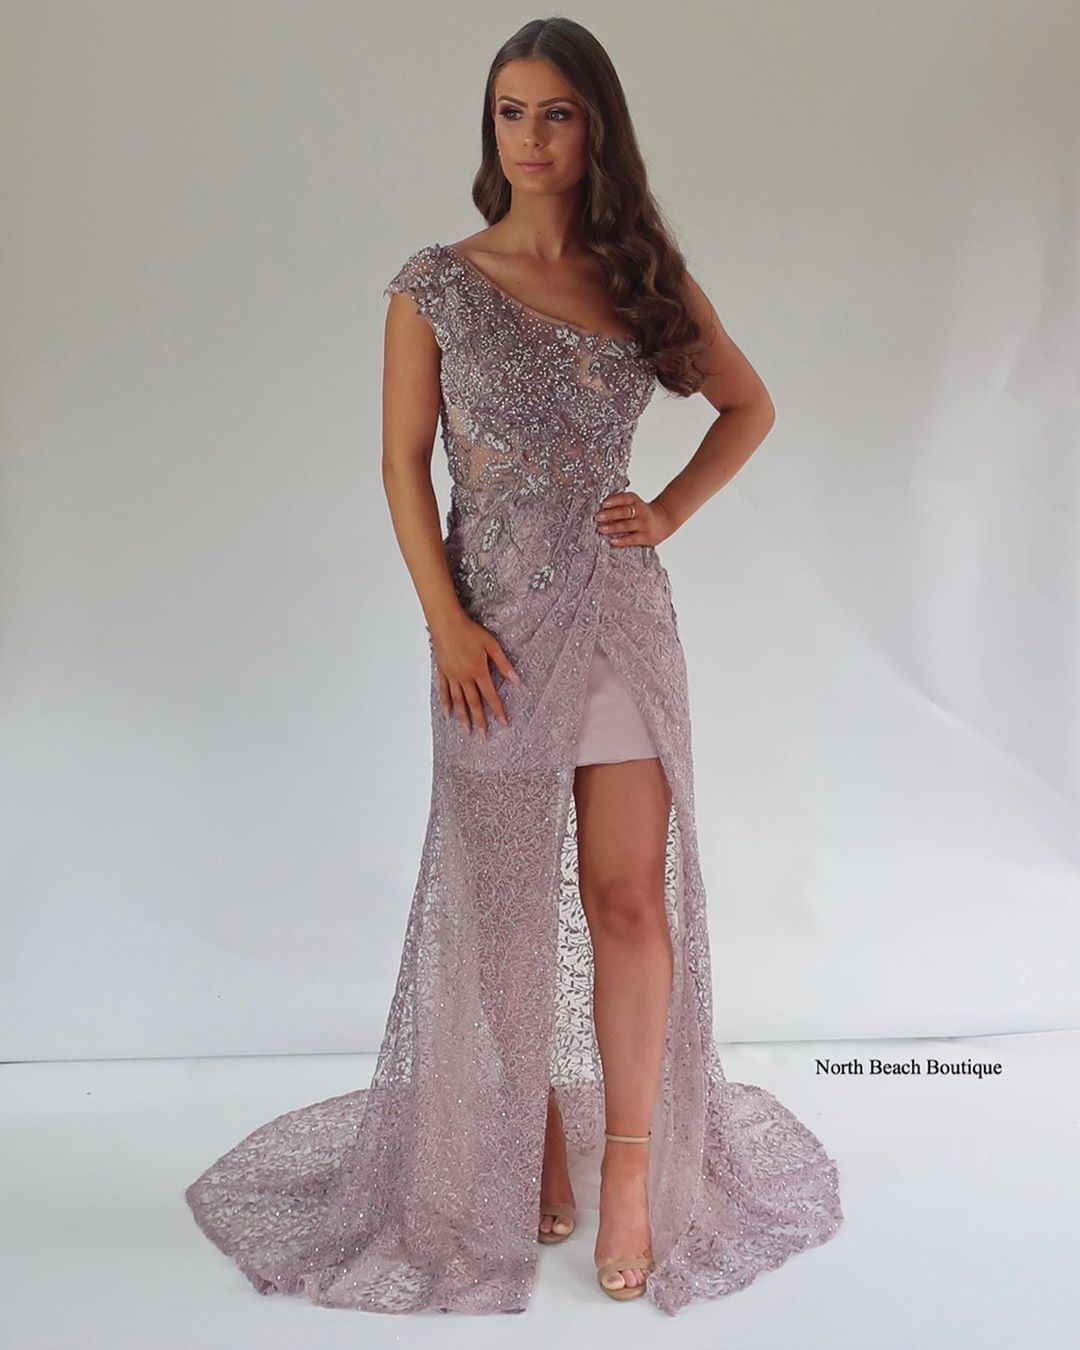 North Beach Boutique On Instagram Adriana Elegant And Ultra Feminine This One Shoulder Piece Is Crafted From Intricatel Dresses Lace Dress Evening Dresses